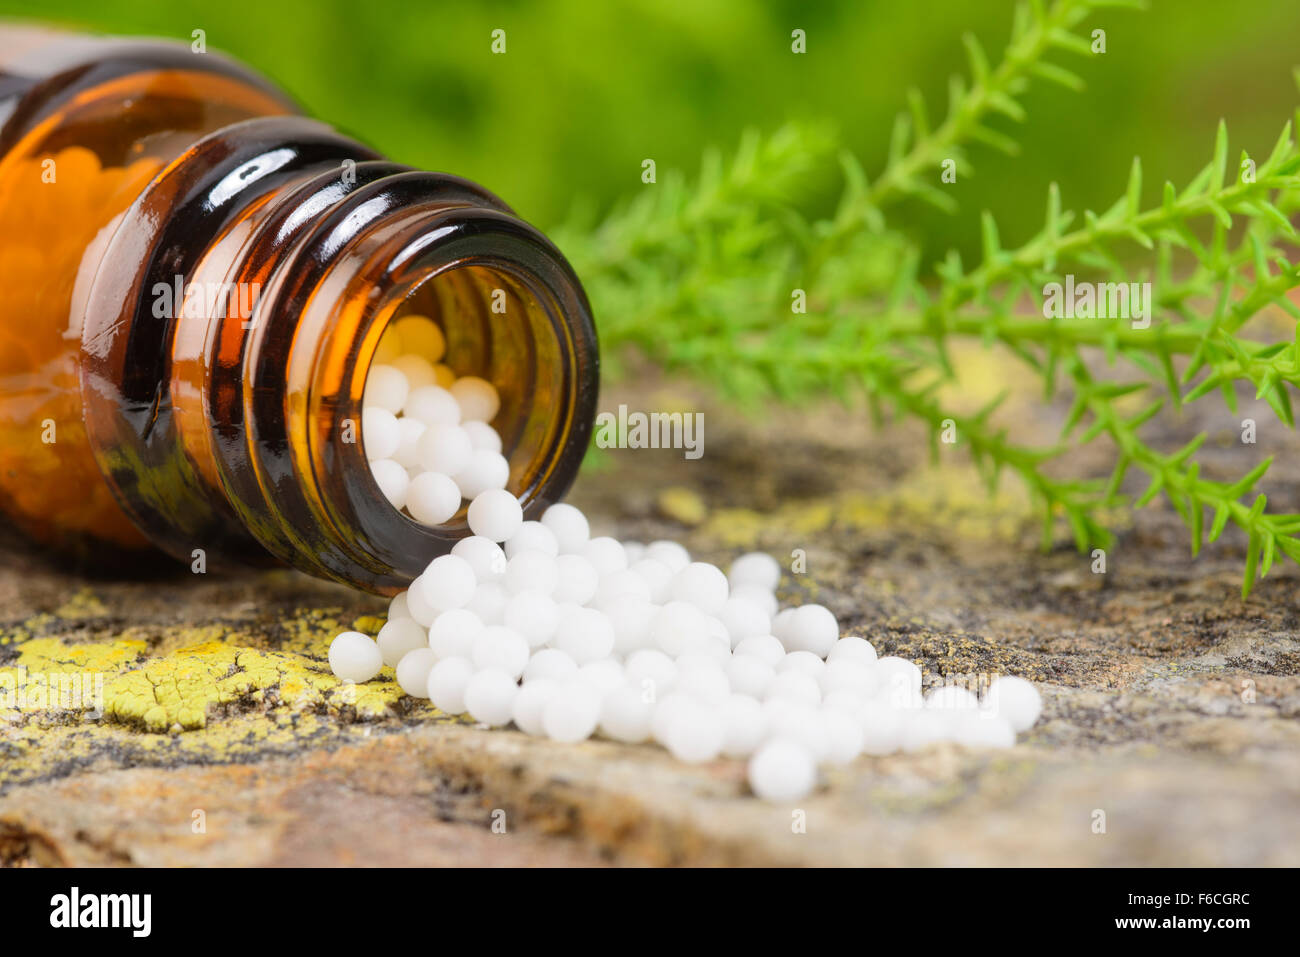 alternative medicine with herbal pills - Stock Image